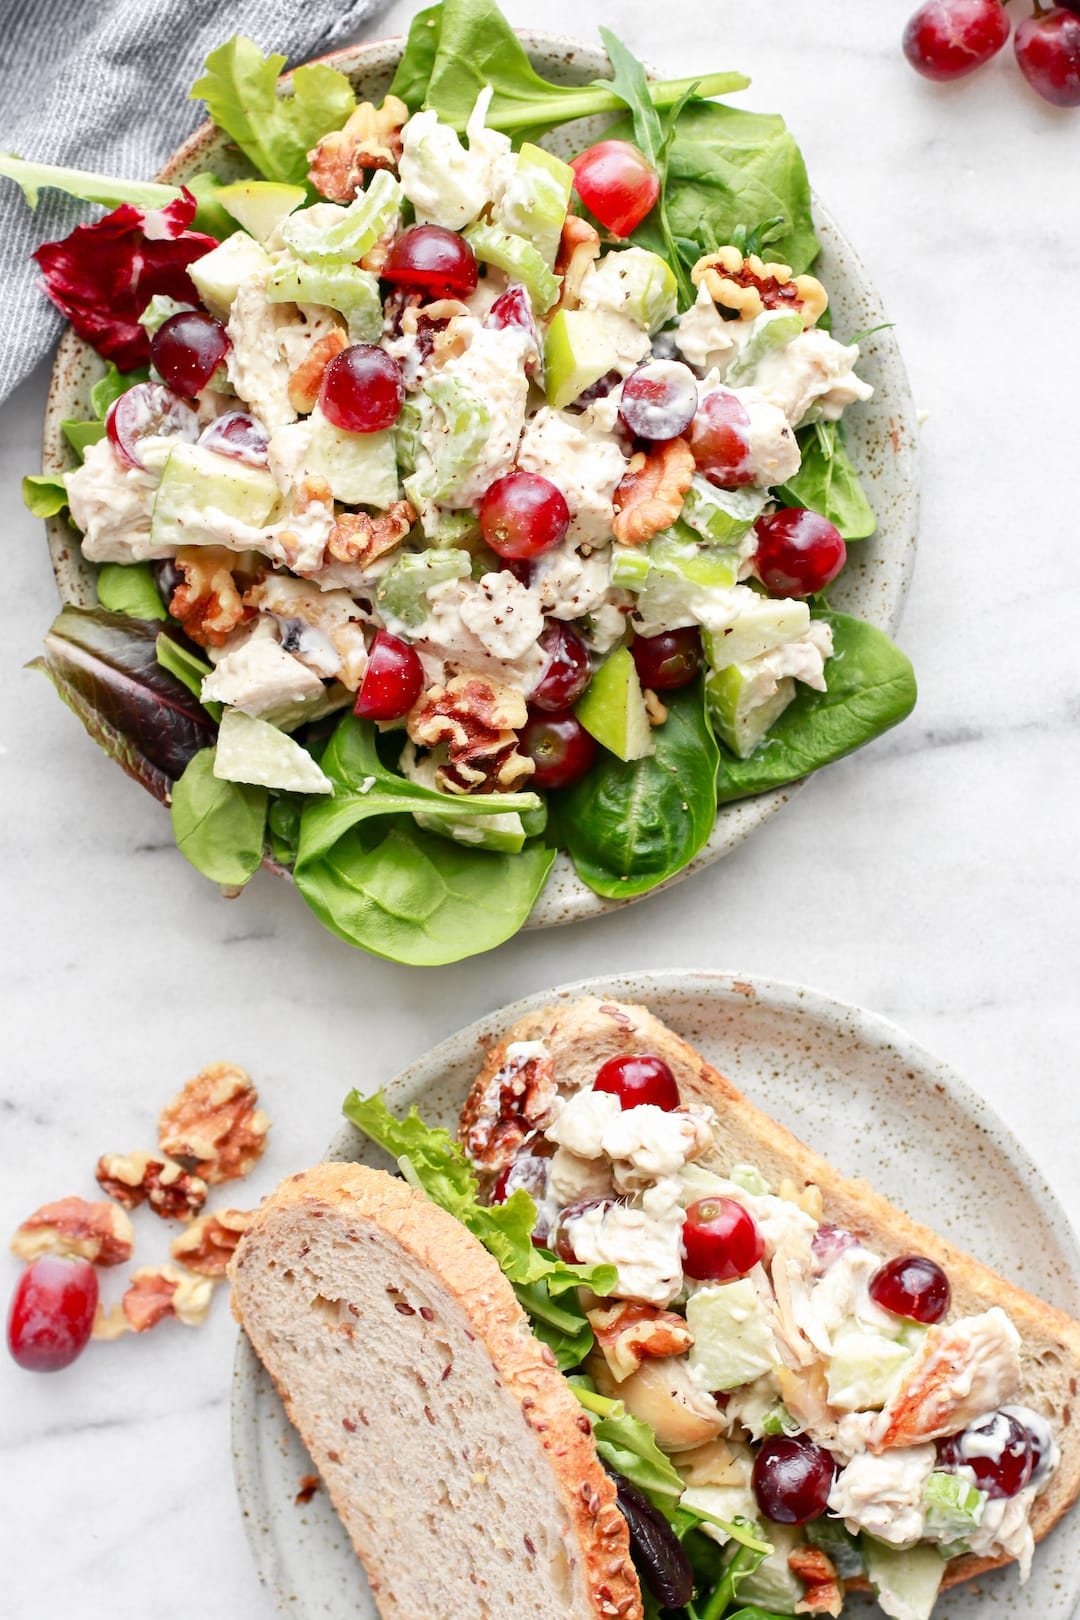 chicken salad with grapes and lettuce on a large plate